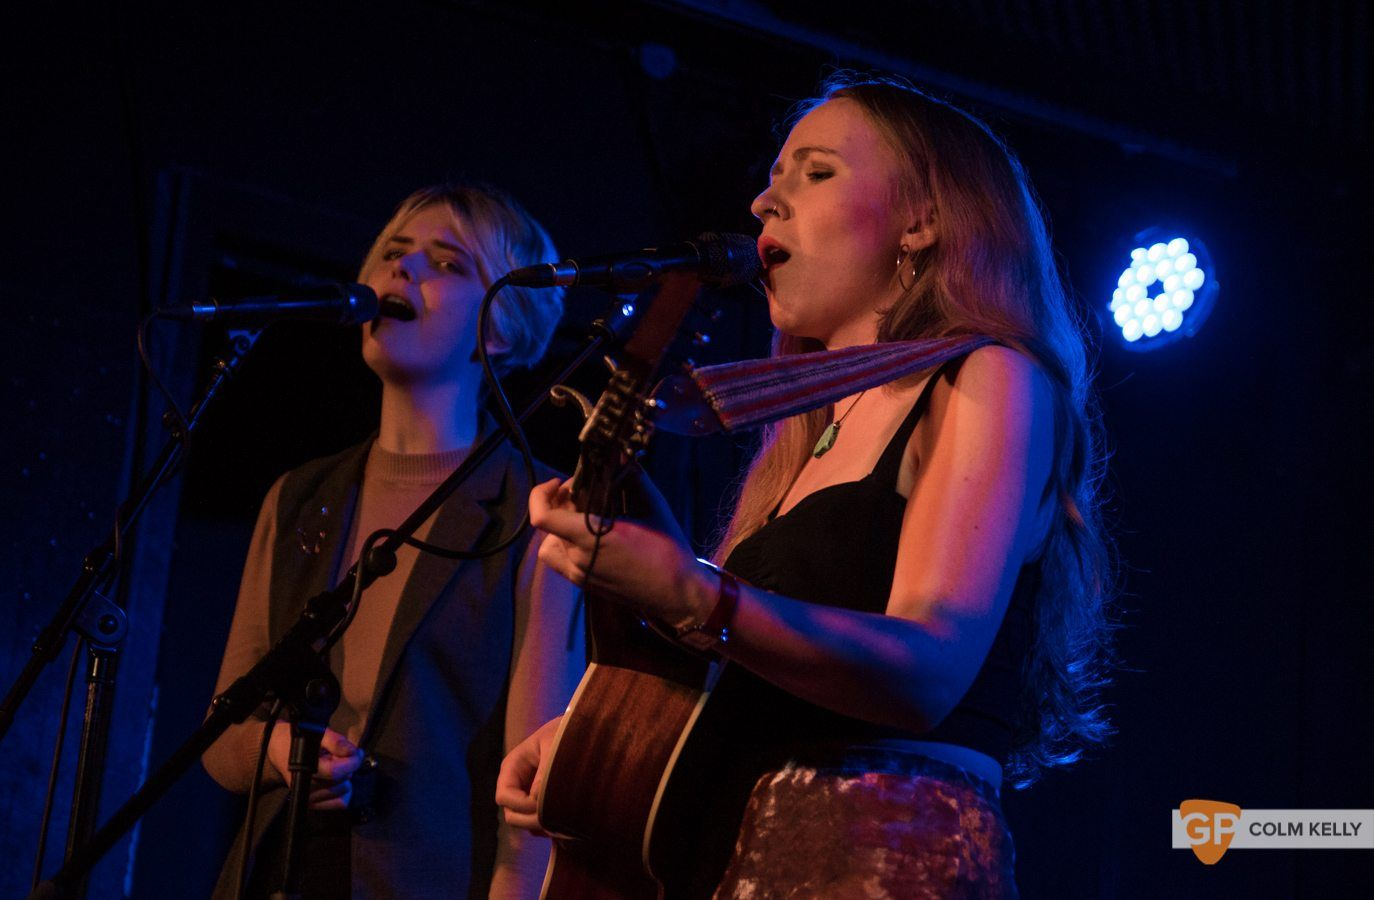 Leila Jane & The Healers at The Workmans Club by Colm Kelly-4-12